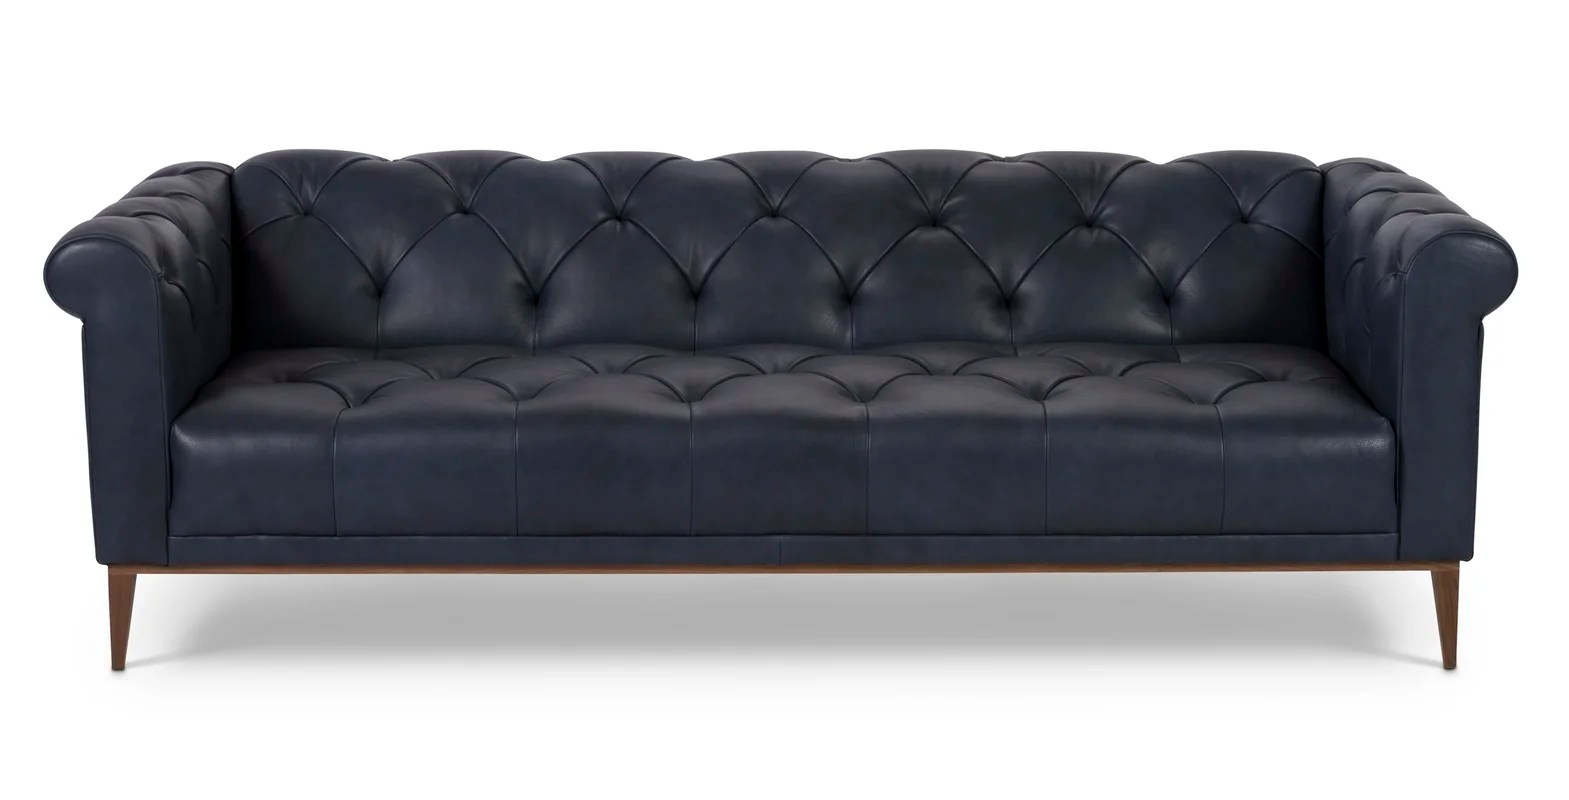 reverie sofa cindy crawford denim leather chesterfield and reviews perigold